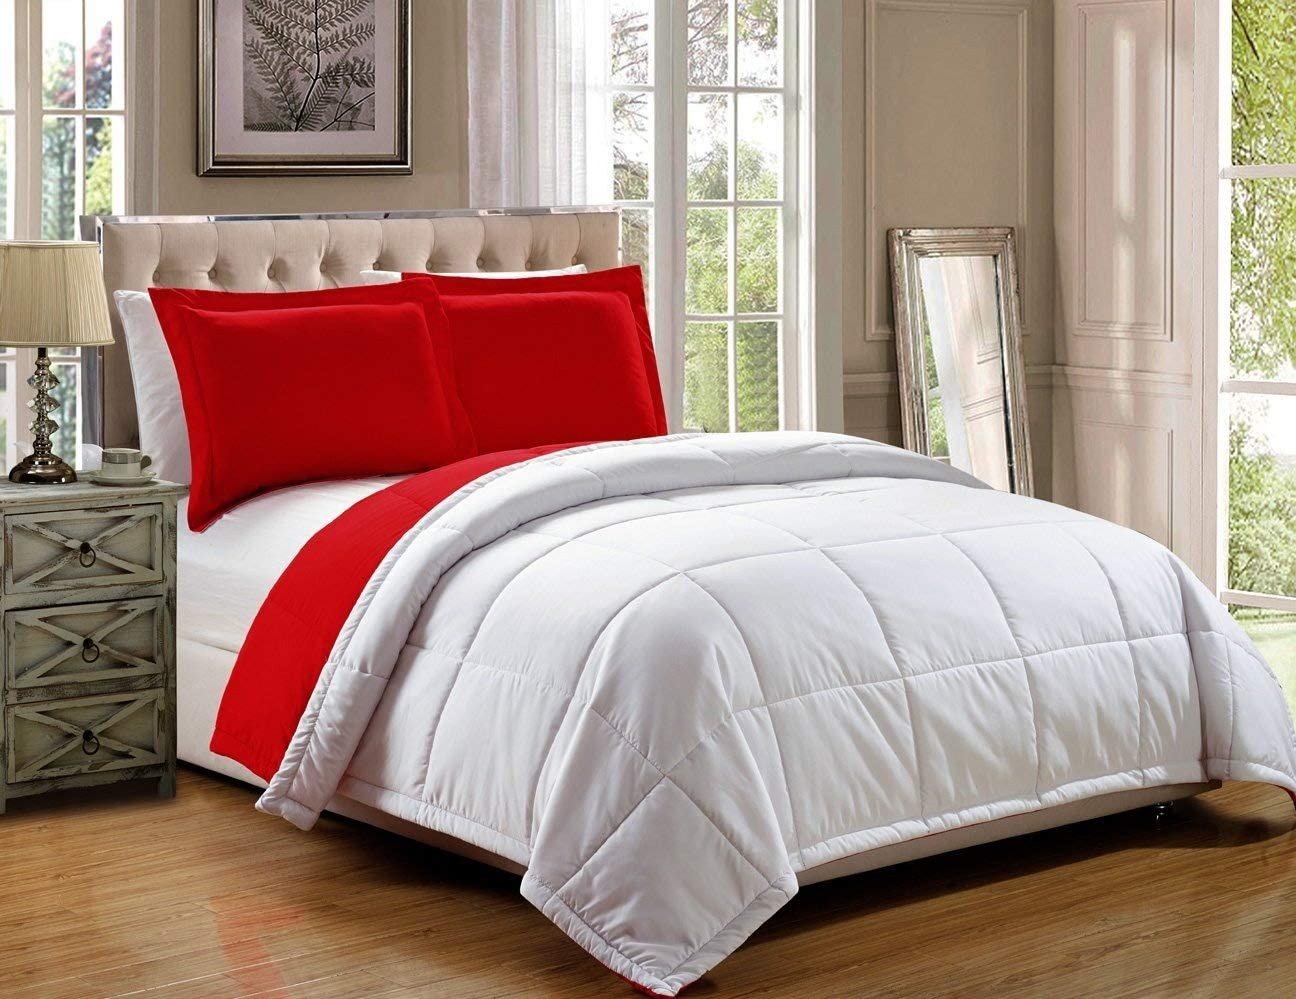 Grand Linen 2 Piece Luxury Red/White Reversible Goose Down A